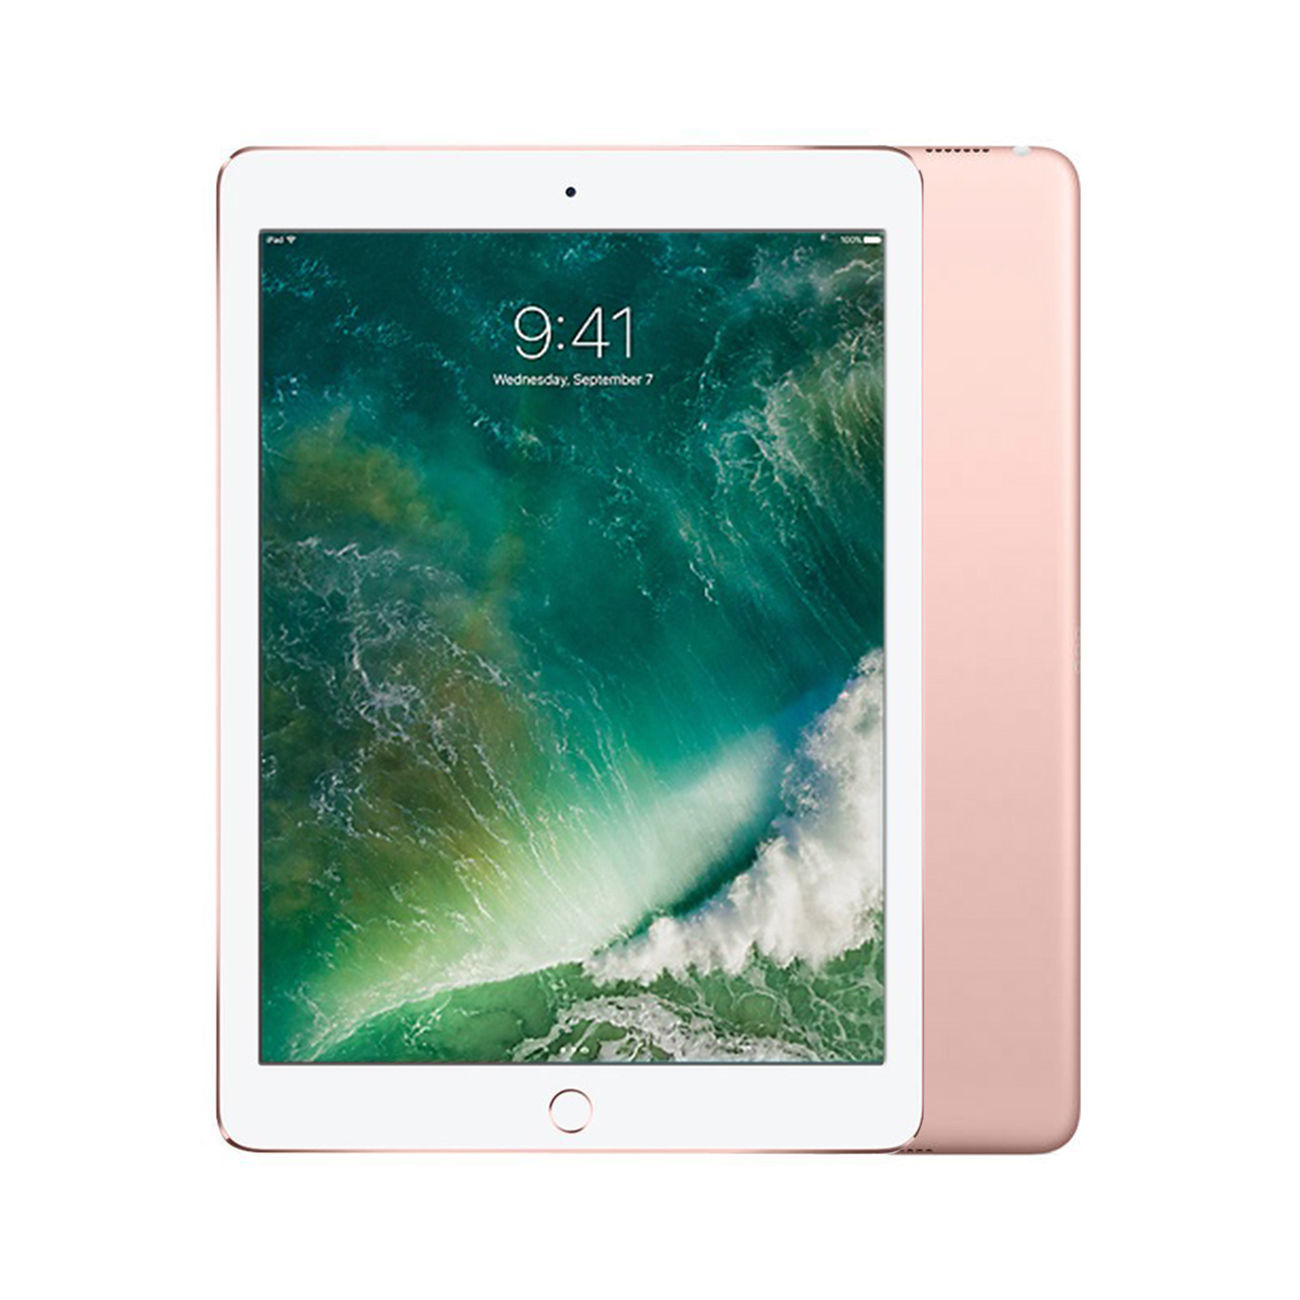 Apple iPad Pro 9.7 Wi-Fi + Cellular [32GB] [Rose Gold] [Good] [12M]